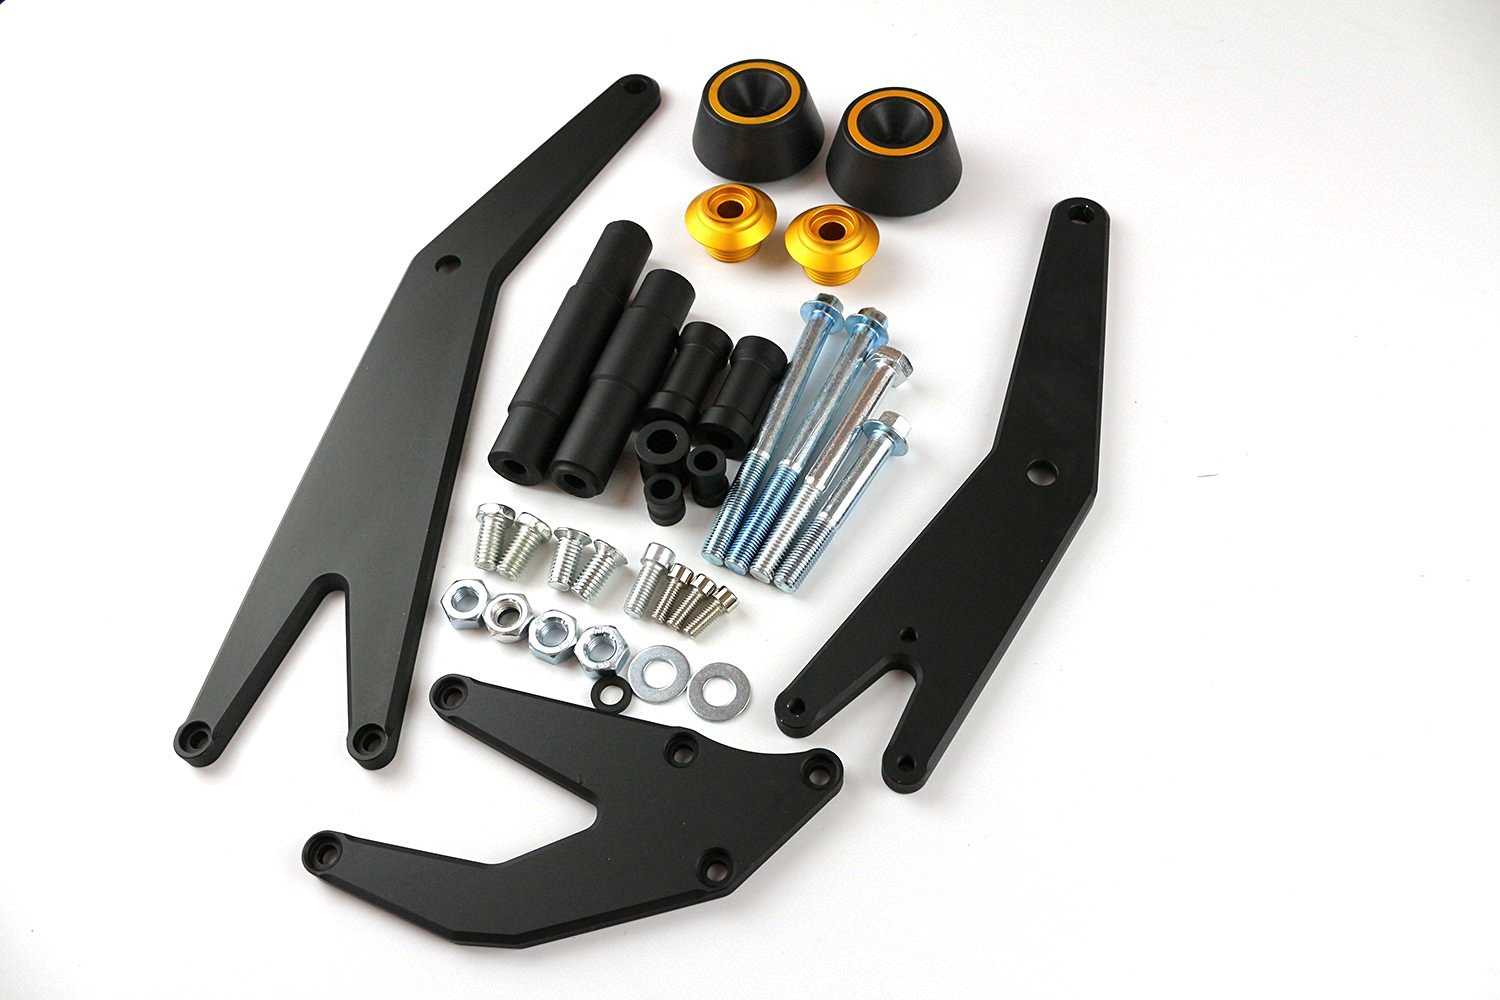 Motorcycle CNC Falling Crash Protector Frame Sliders Guard Mount Bracket Kit For Kawasaki NINJA300 NINJA250 ZX300 ZX250